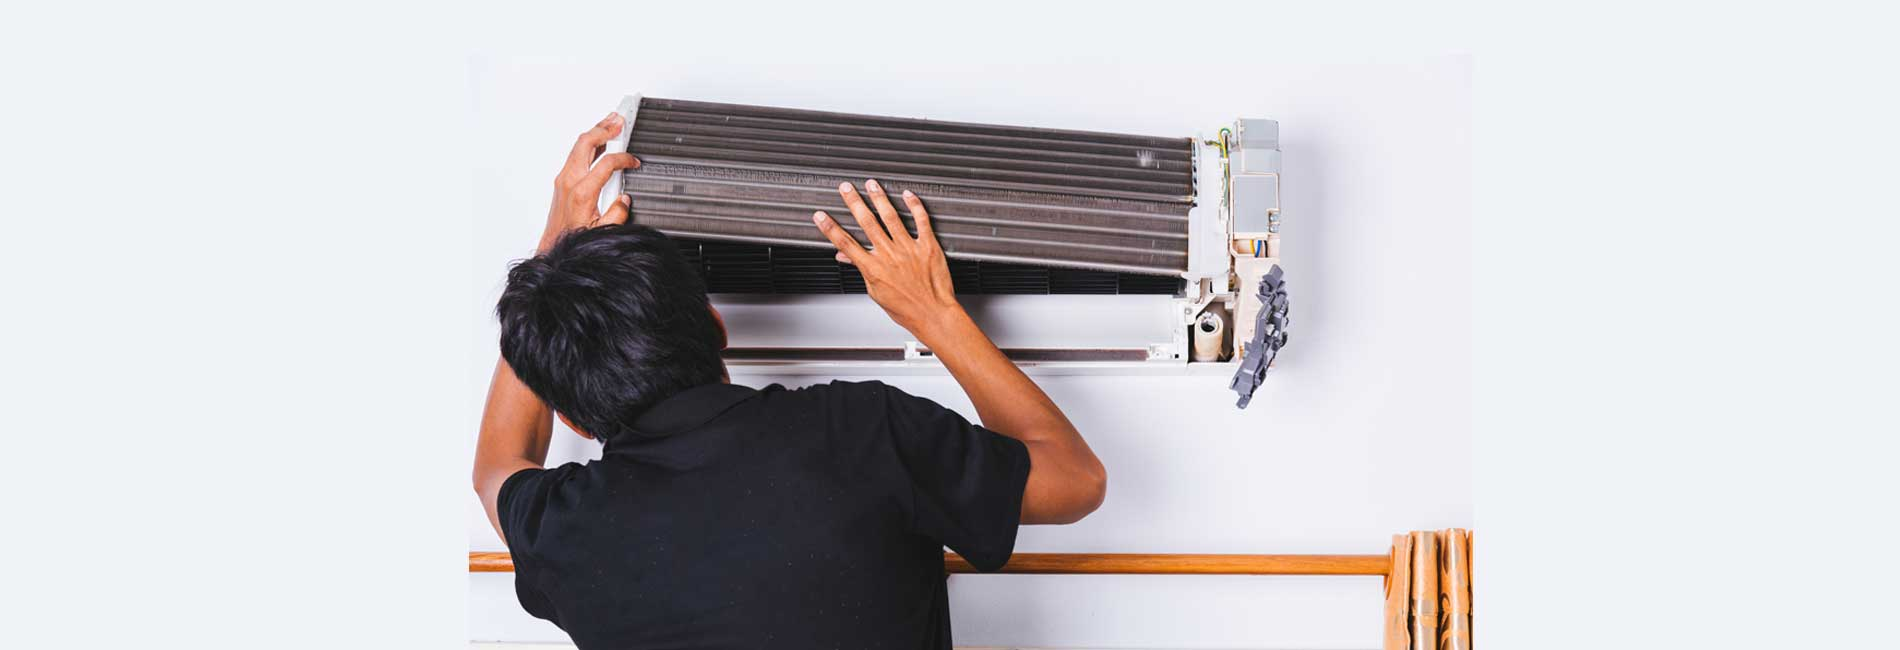 AC Uninstallation Charges in Mandaveli